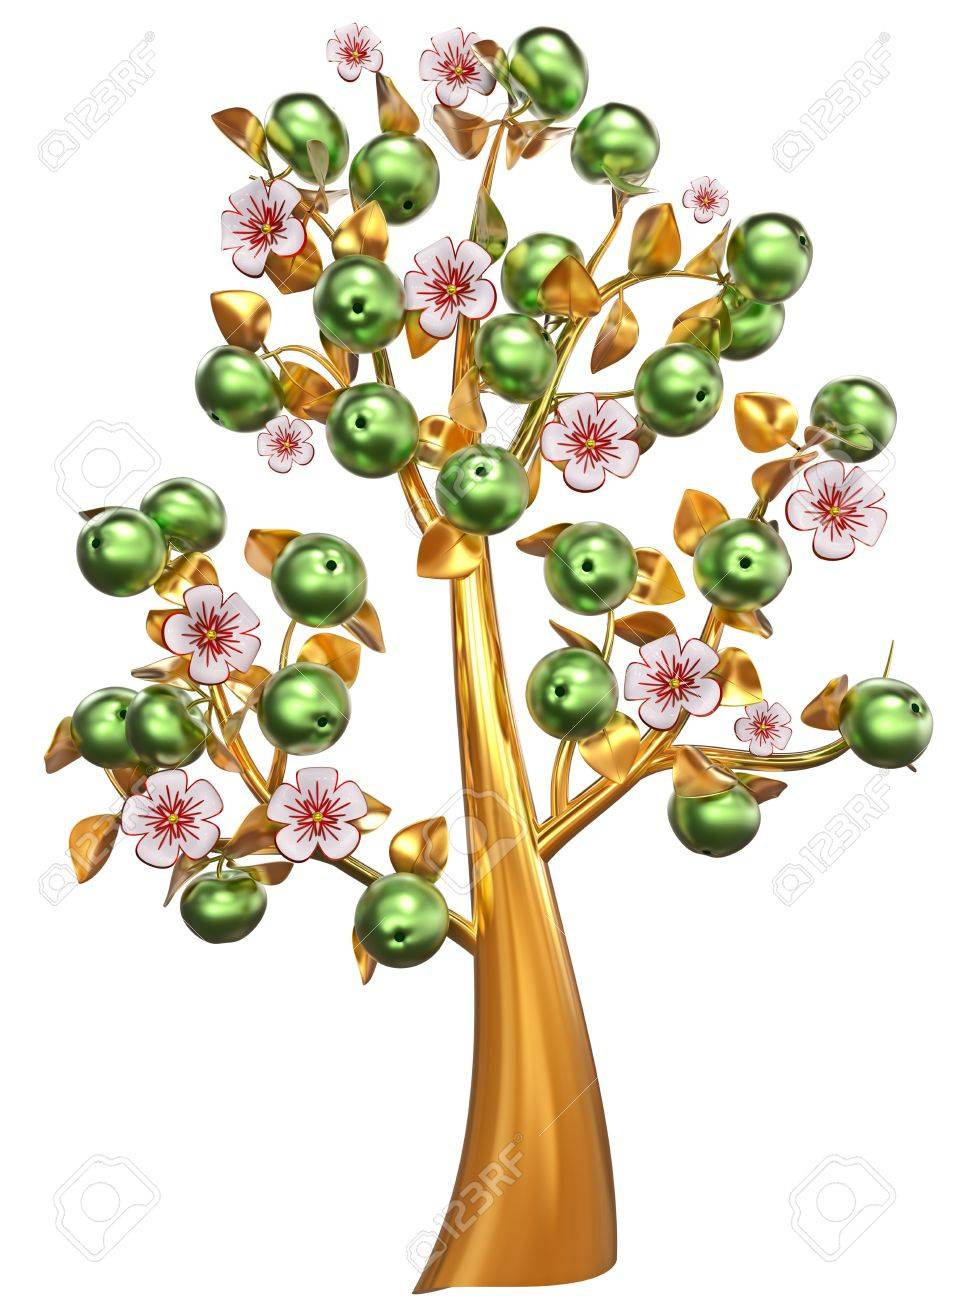 Beautiful golden apple-tree with impressive green apples, white flowers and golden leaves as jewelry Stock Photo - 18603033